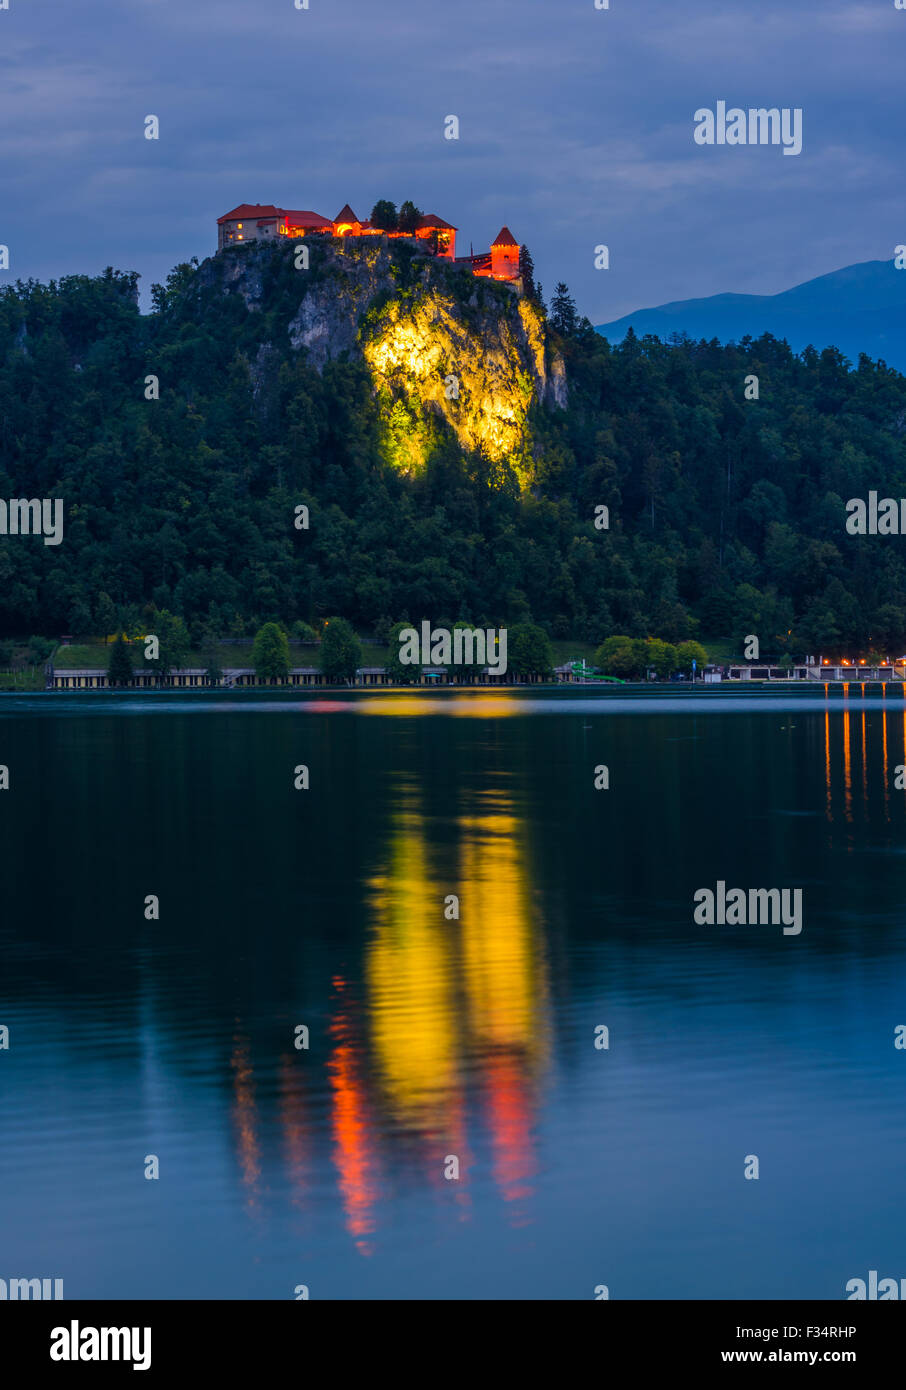 Illuminated Bled Castle at Bled Lake in Slovenia at Night Reflected on Water Surface - Stock Image